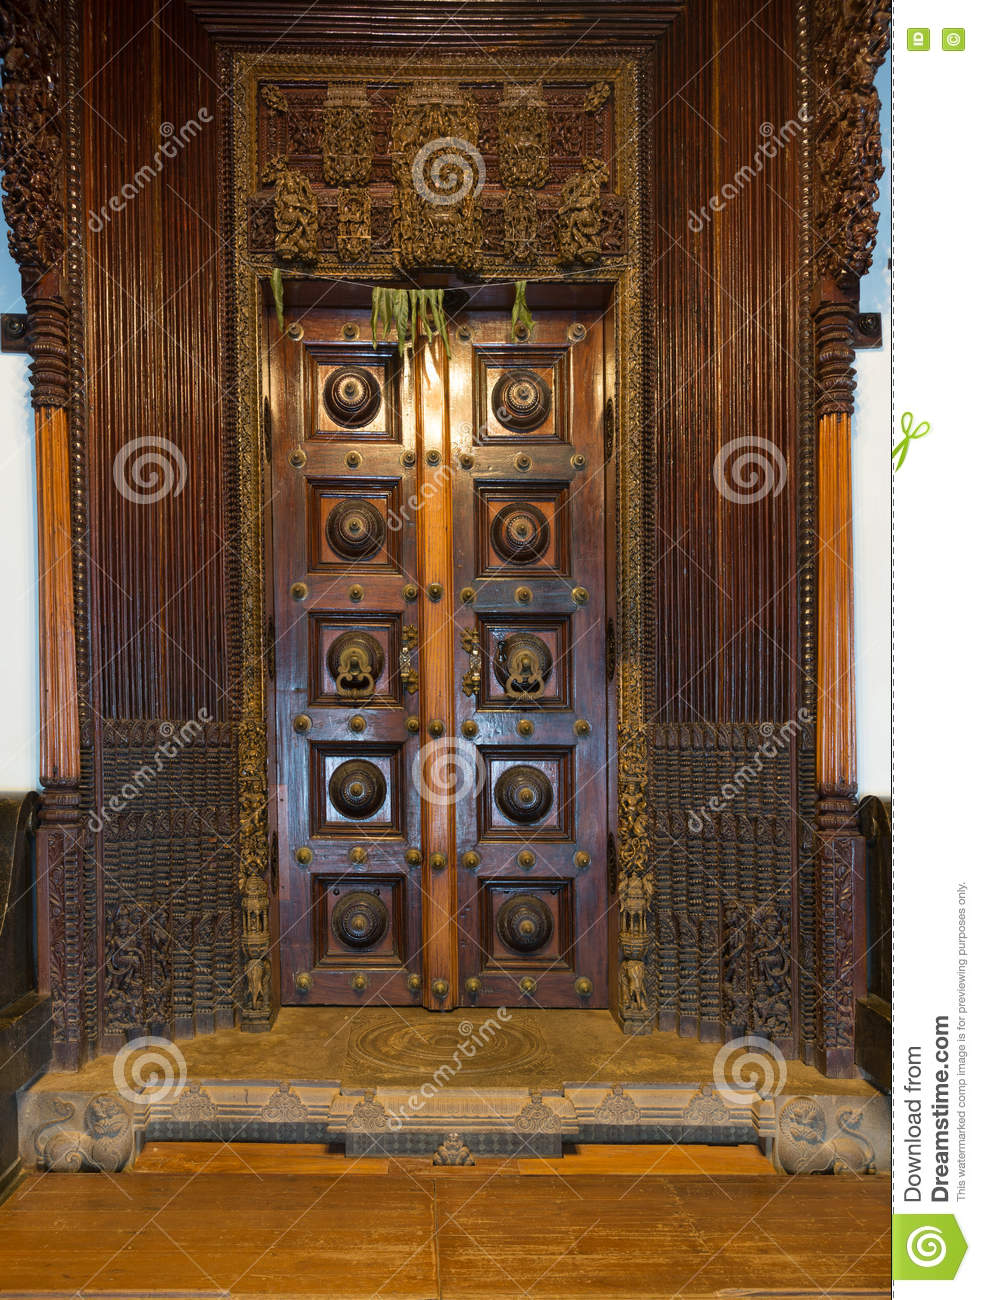 Download Chidambara Palace, Massive Wooden Antique Door. Stock Photo -  Image of spiritual, - Chidambara Palace, Massive Wooden Antique Door. Stock Photo - Image